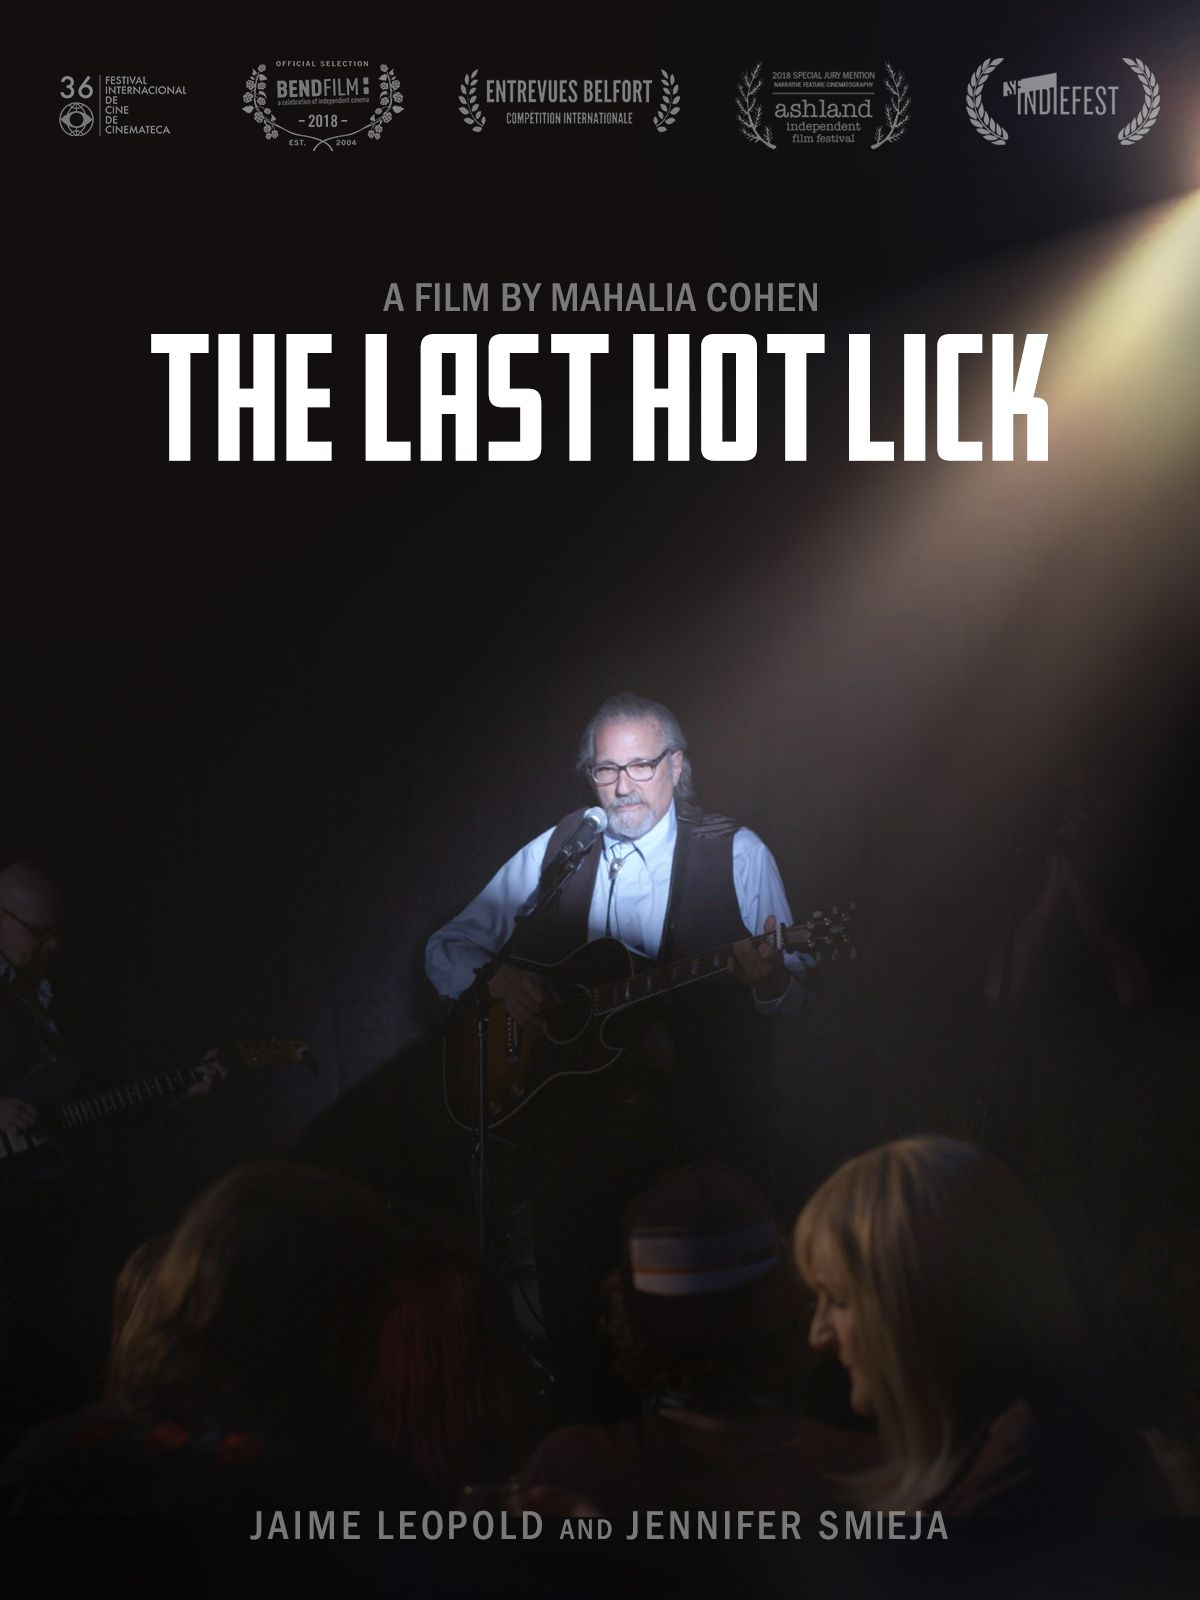 The Last Hot Lick Image